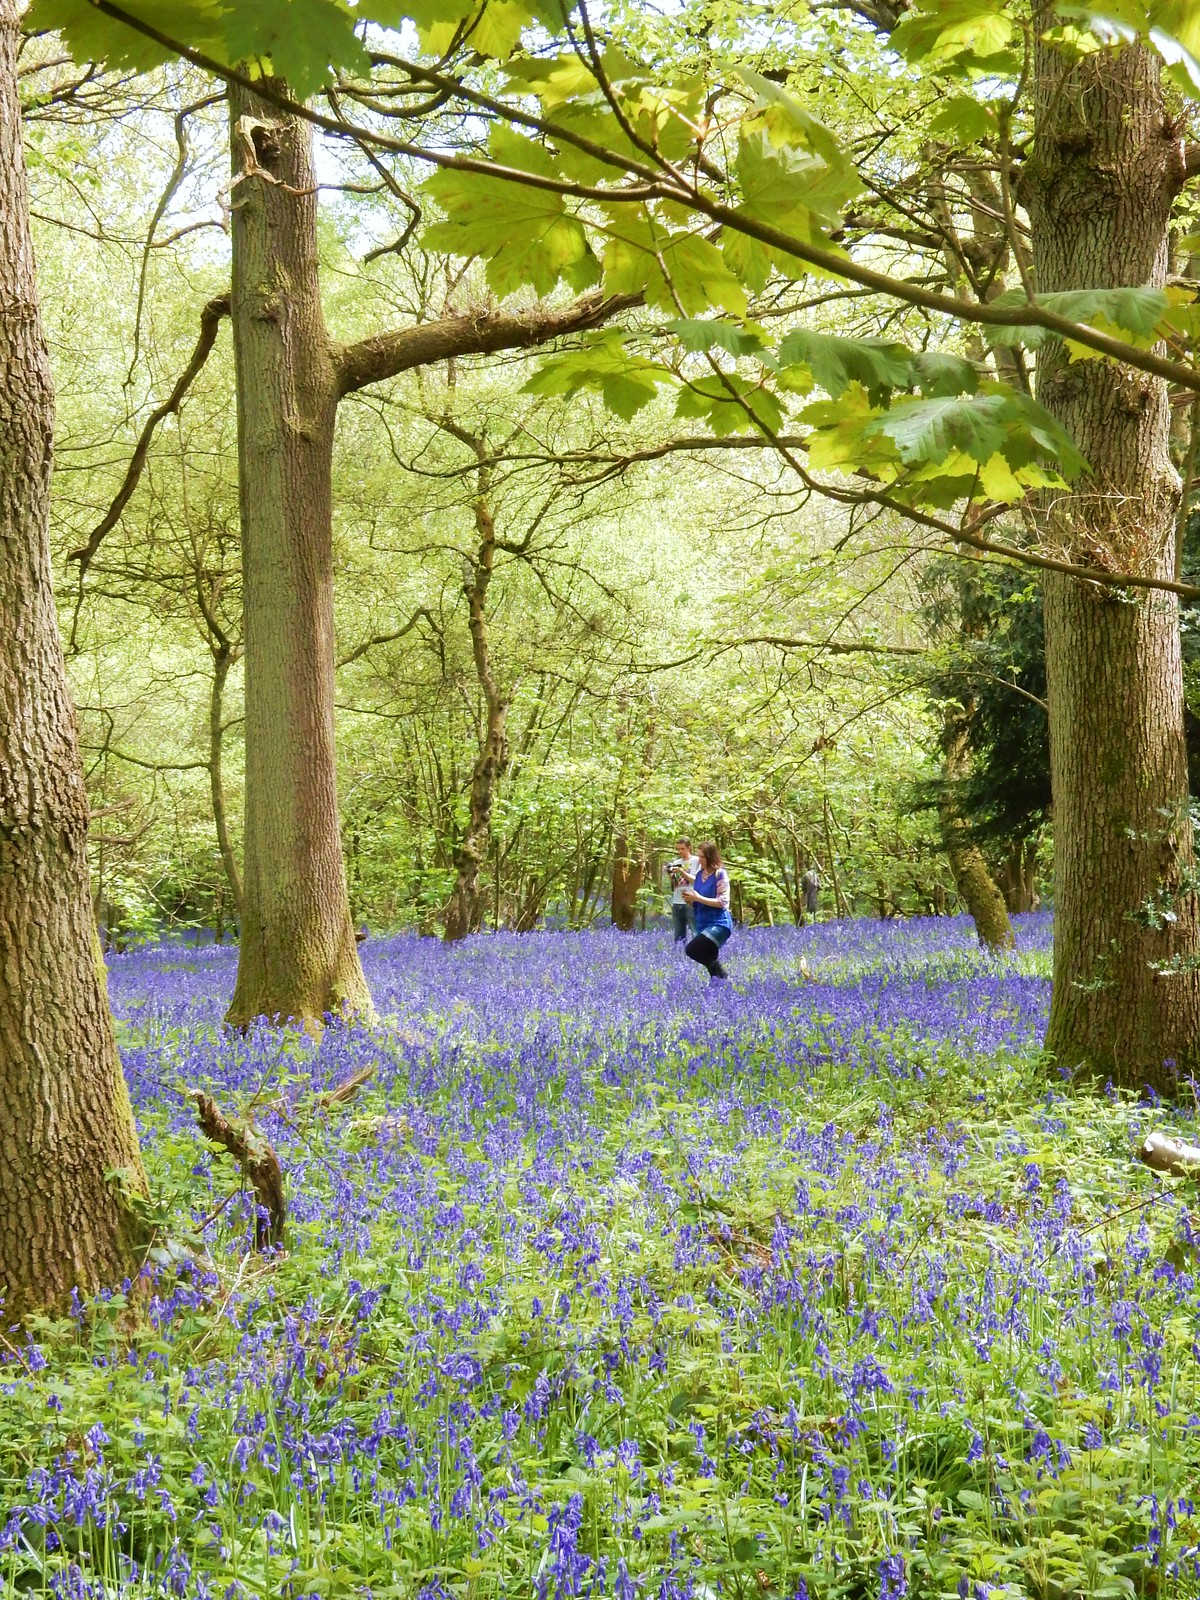 Tiptoe through the Bluebells Whyteleafe to Woldingham